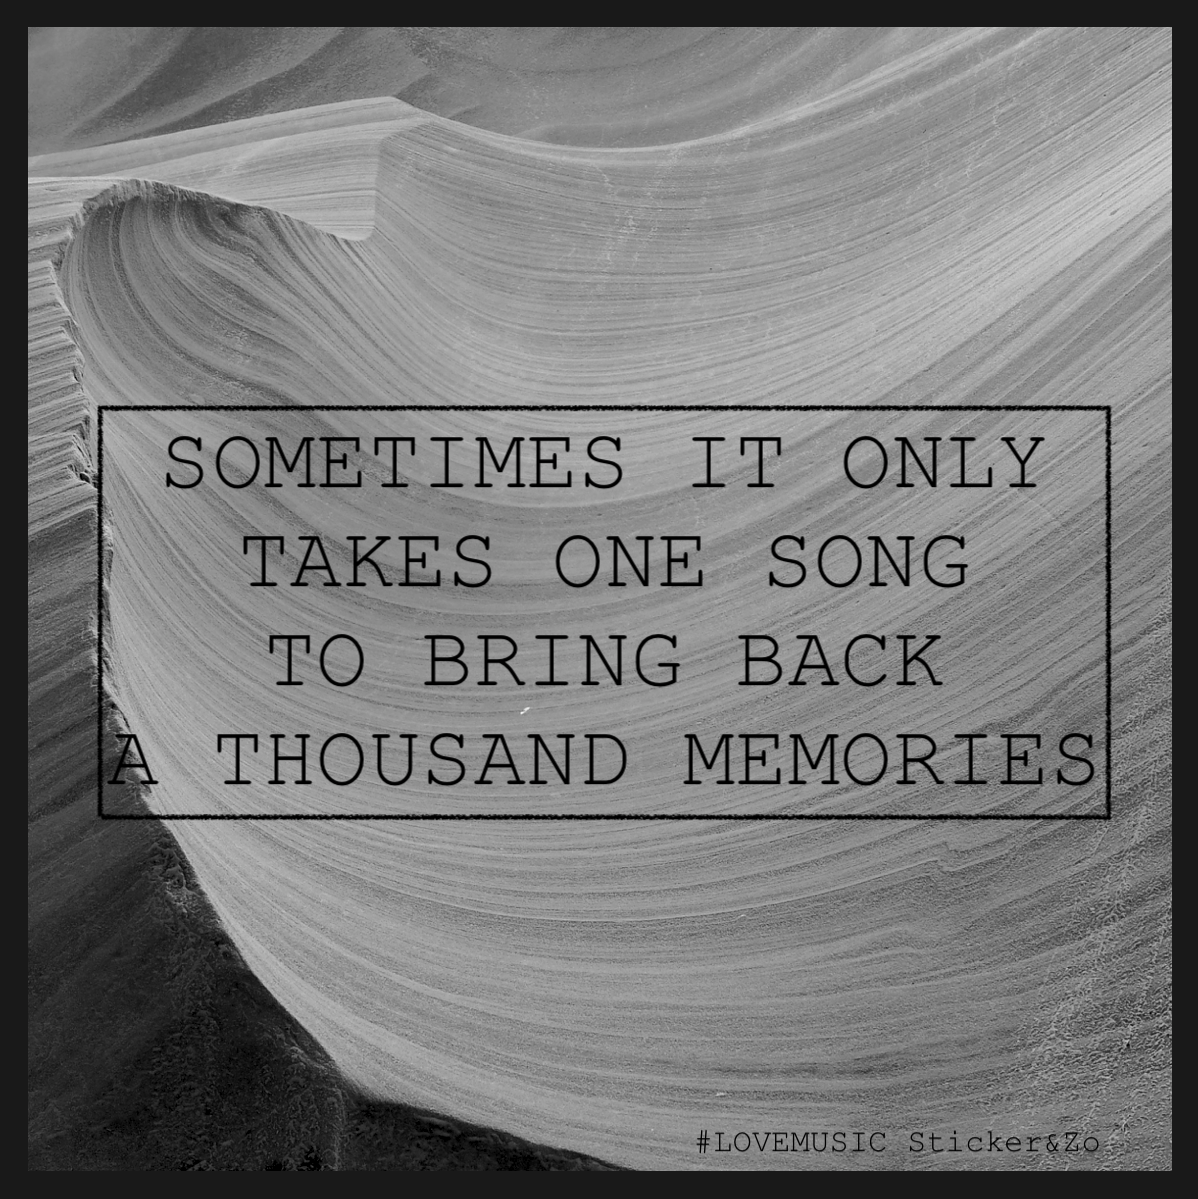 Www Stickerenzo Nl Quote Sometimes It Only Takes One Song To Bring Back A Thousand Memories Memories Quotes Songs Memories